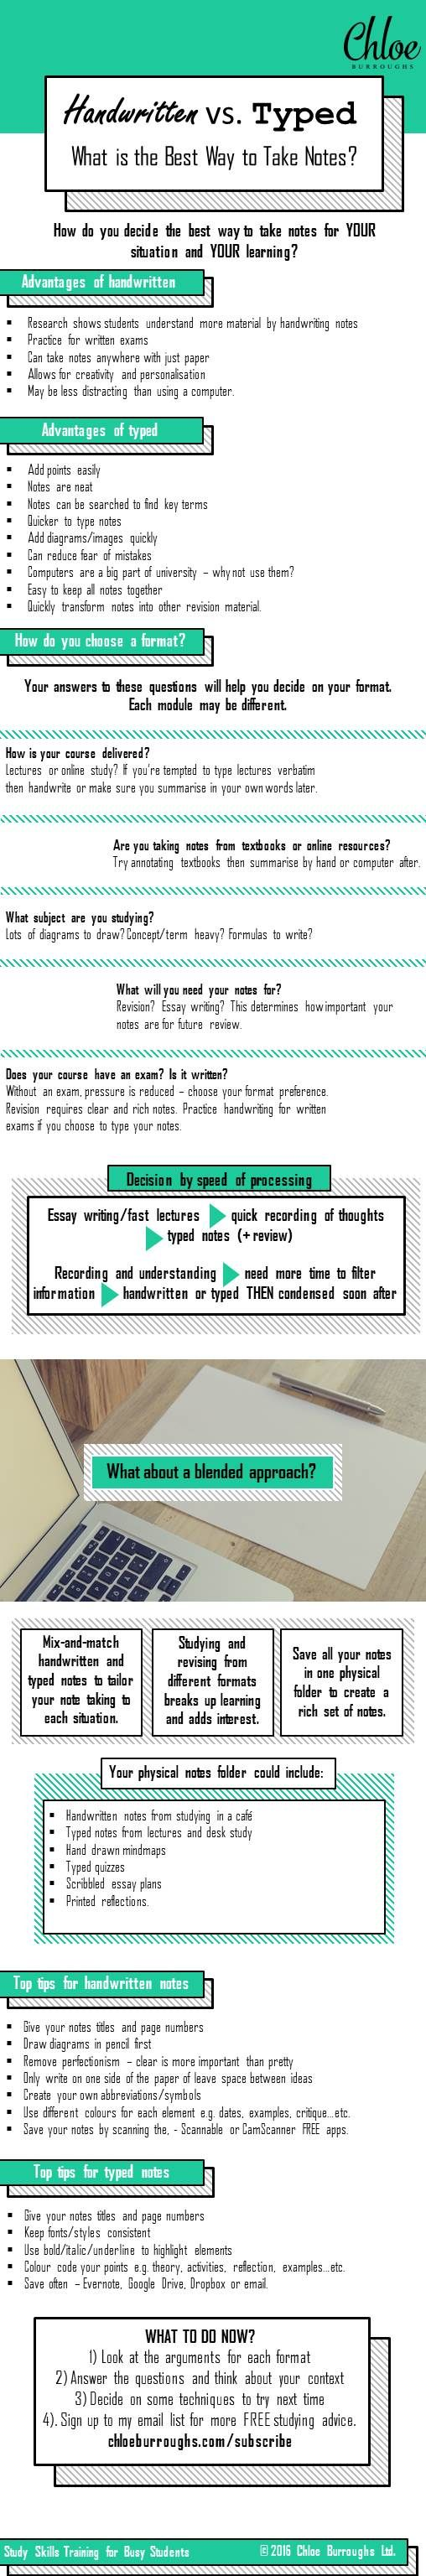 Infographic to help you decide whether to handwrite your notes or type them. It includes advantages of each note taking methods, some note taking top tips and questions about your study and course to help you decide what is best for you